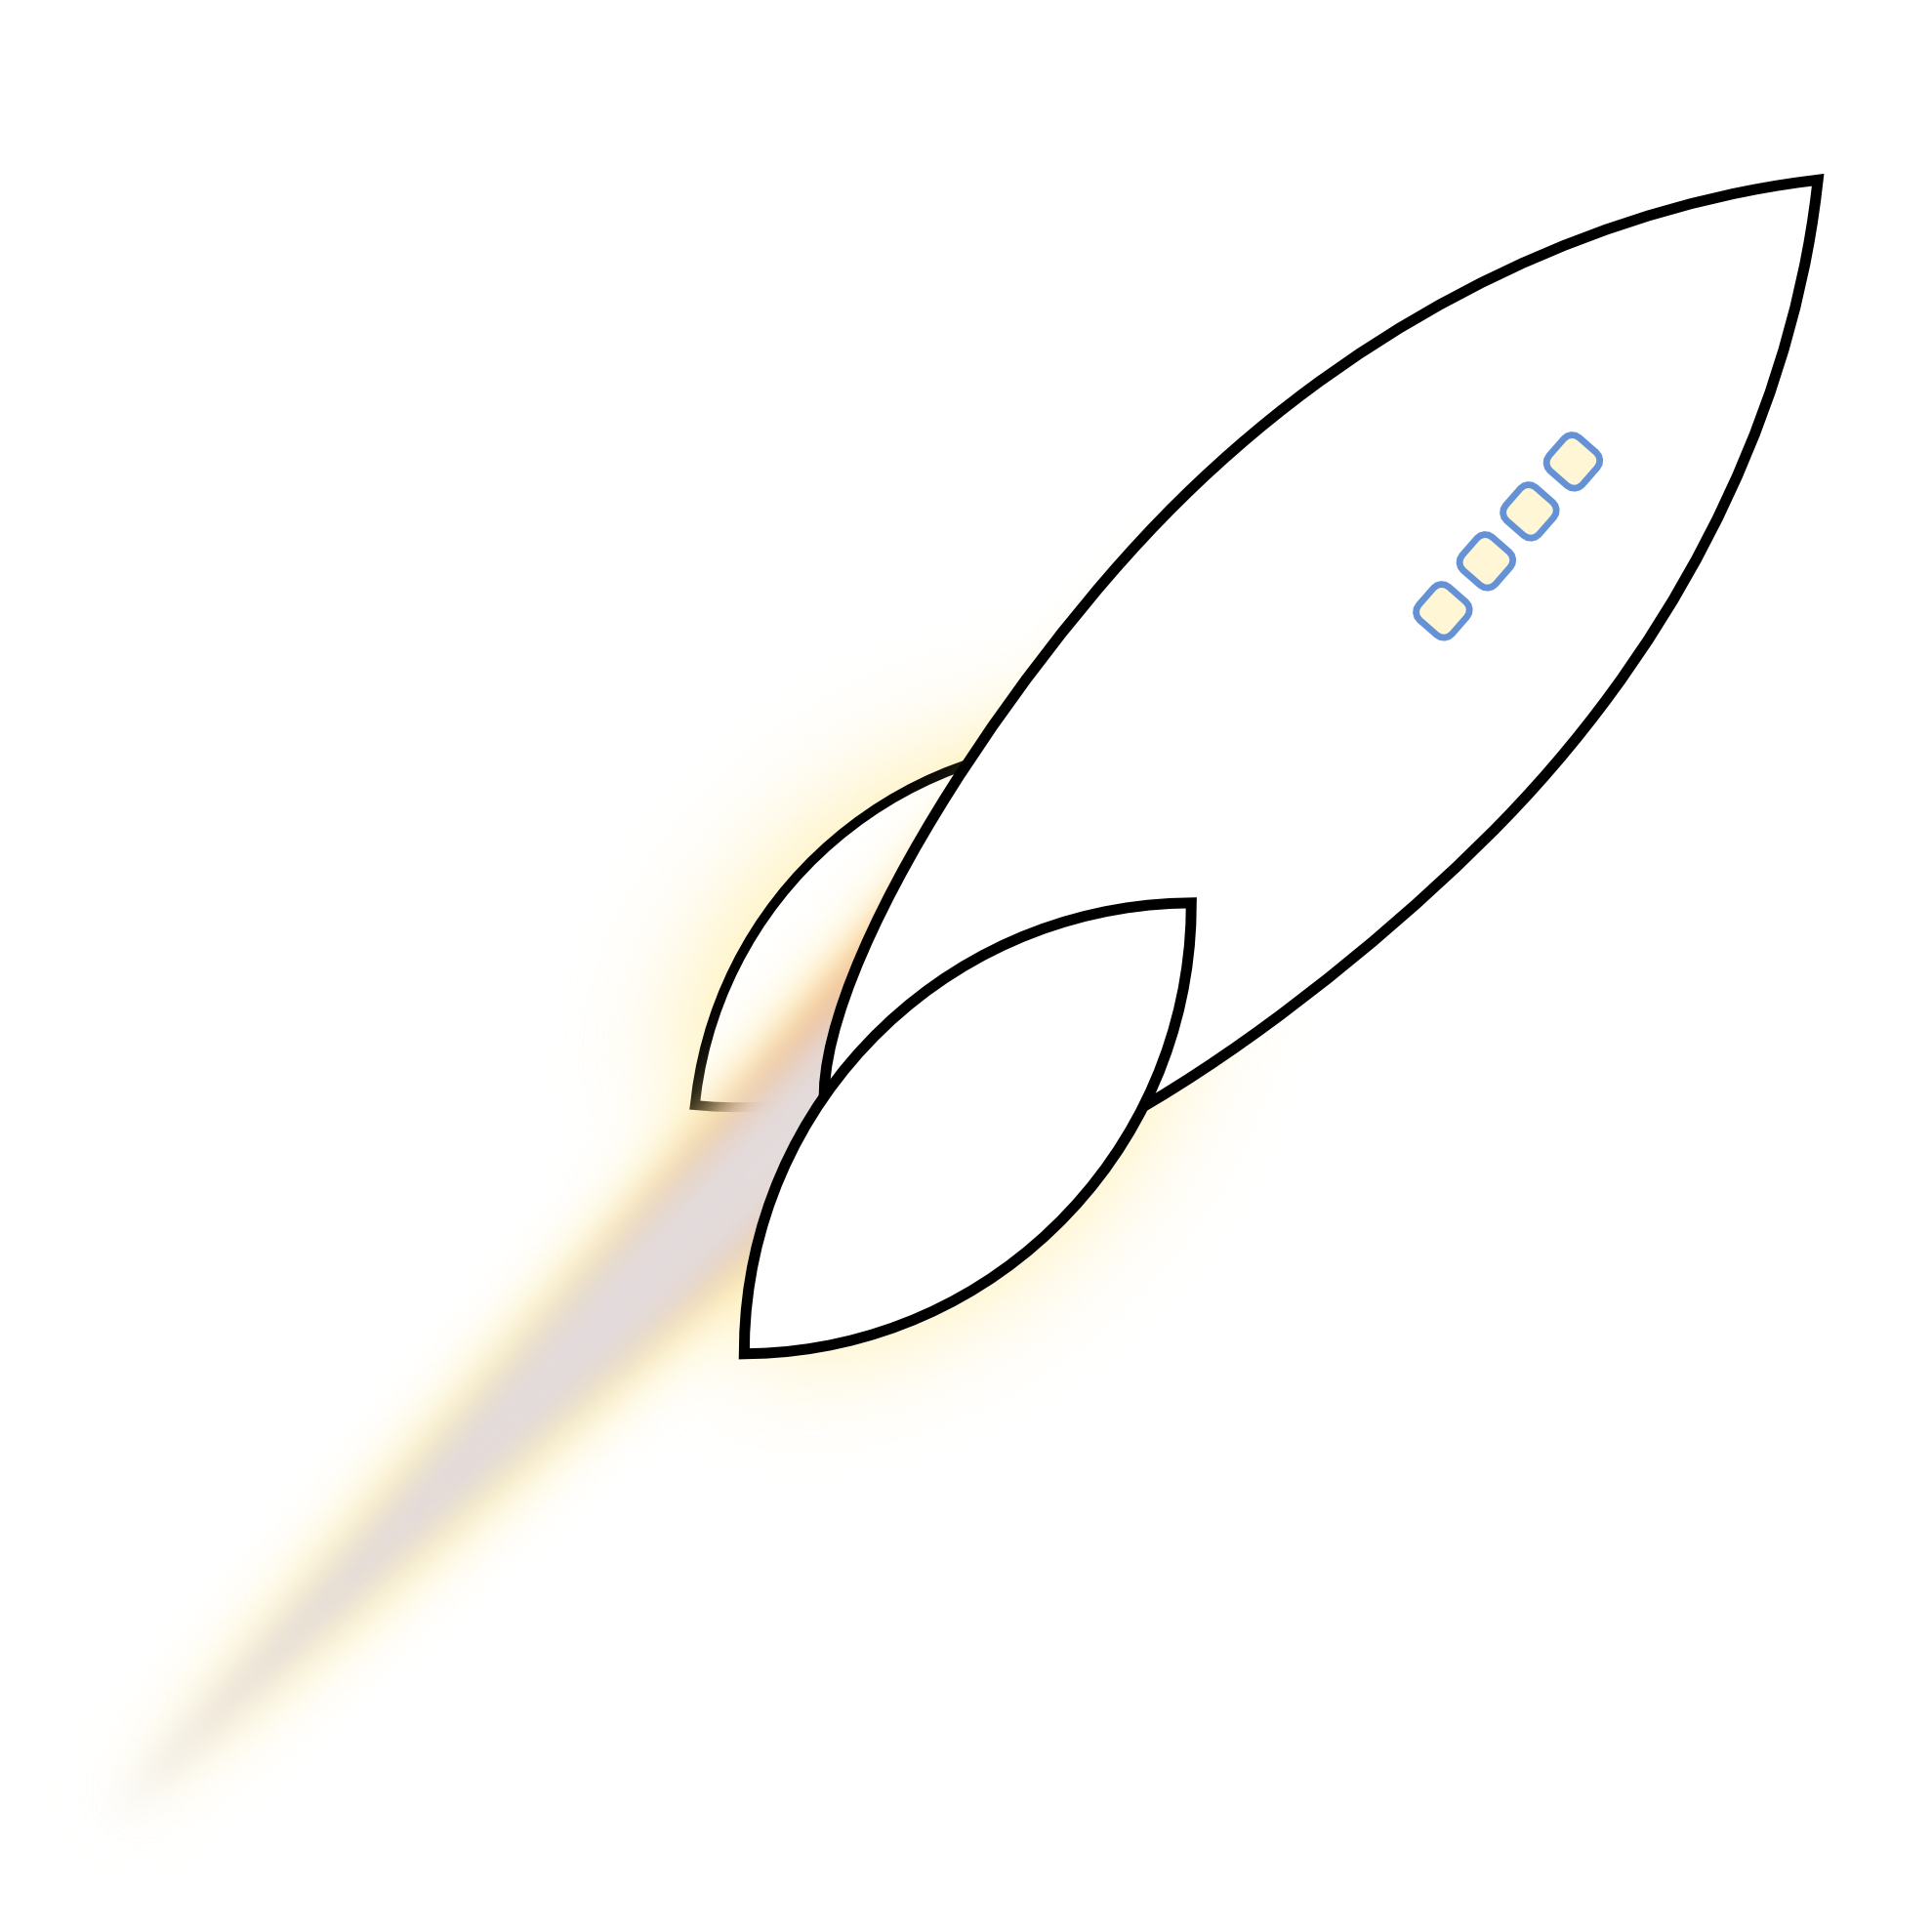 Spaceship svg vector. Free download clip art